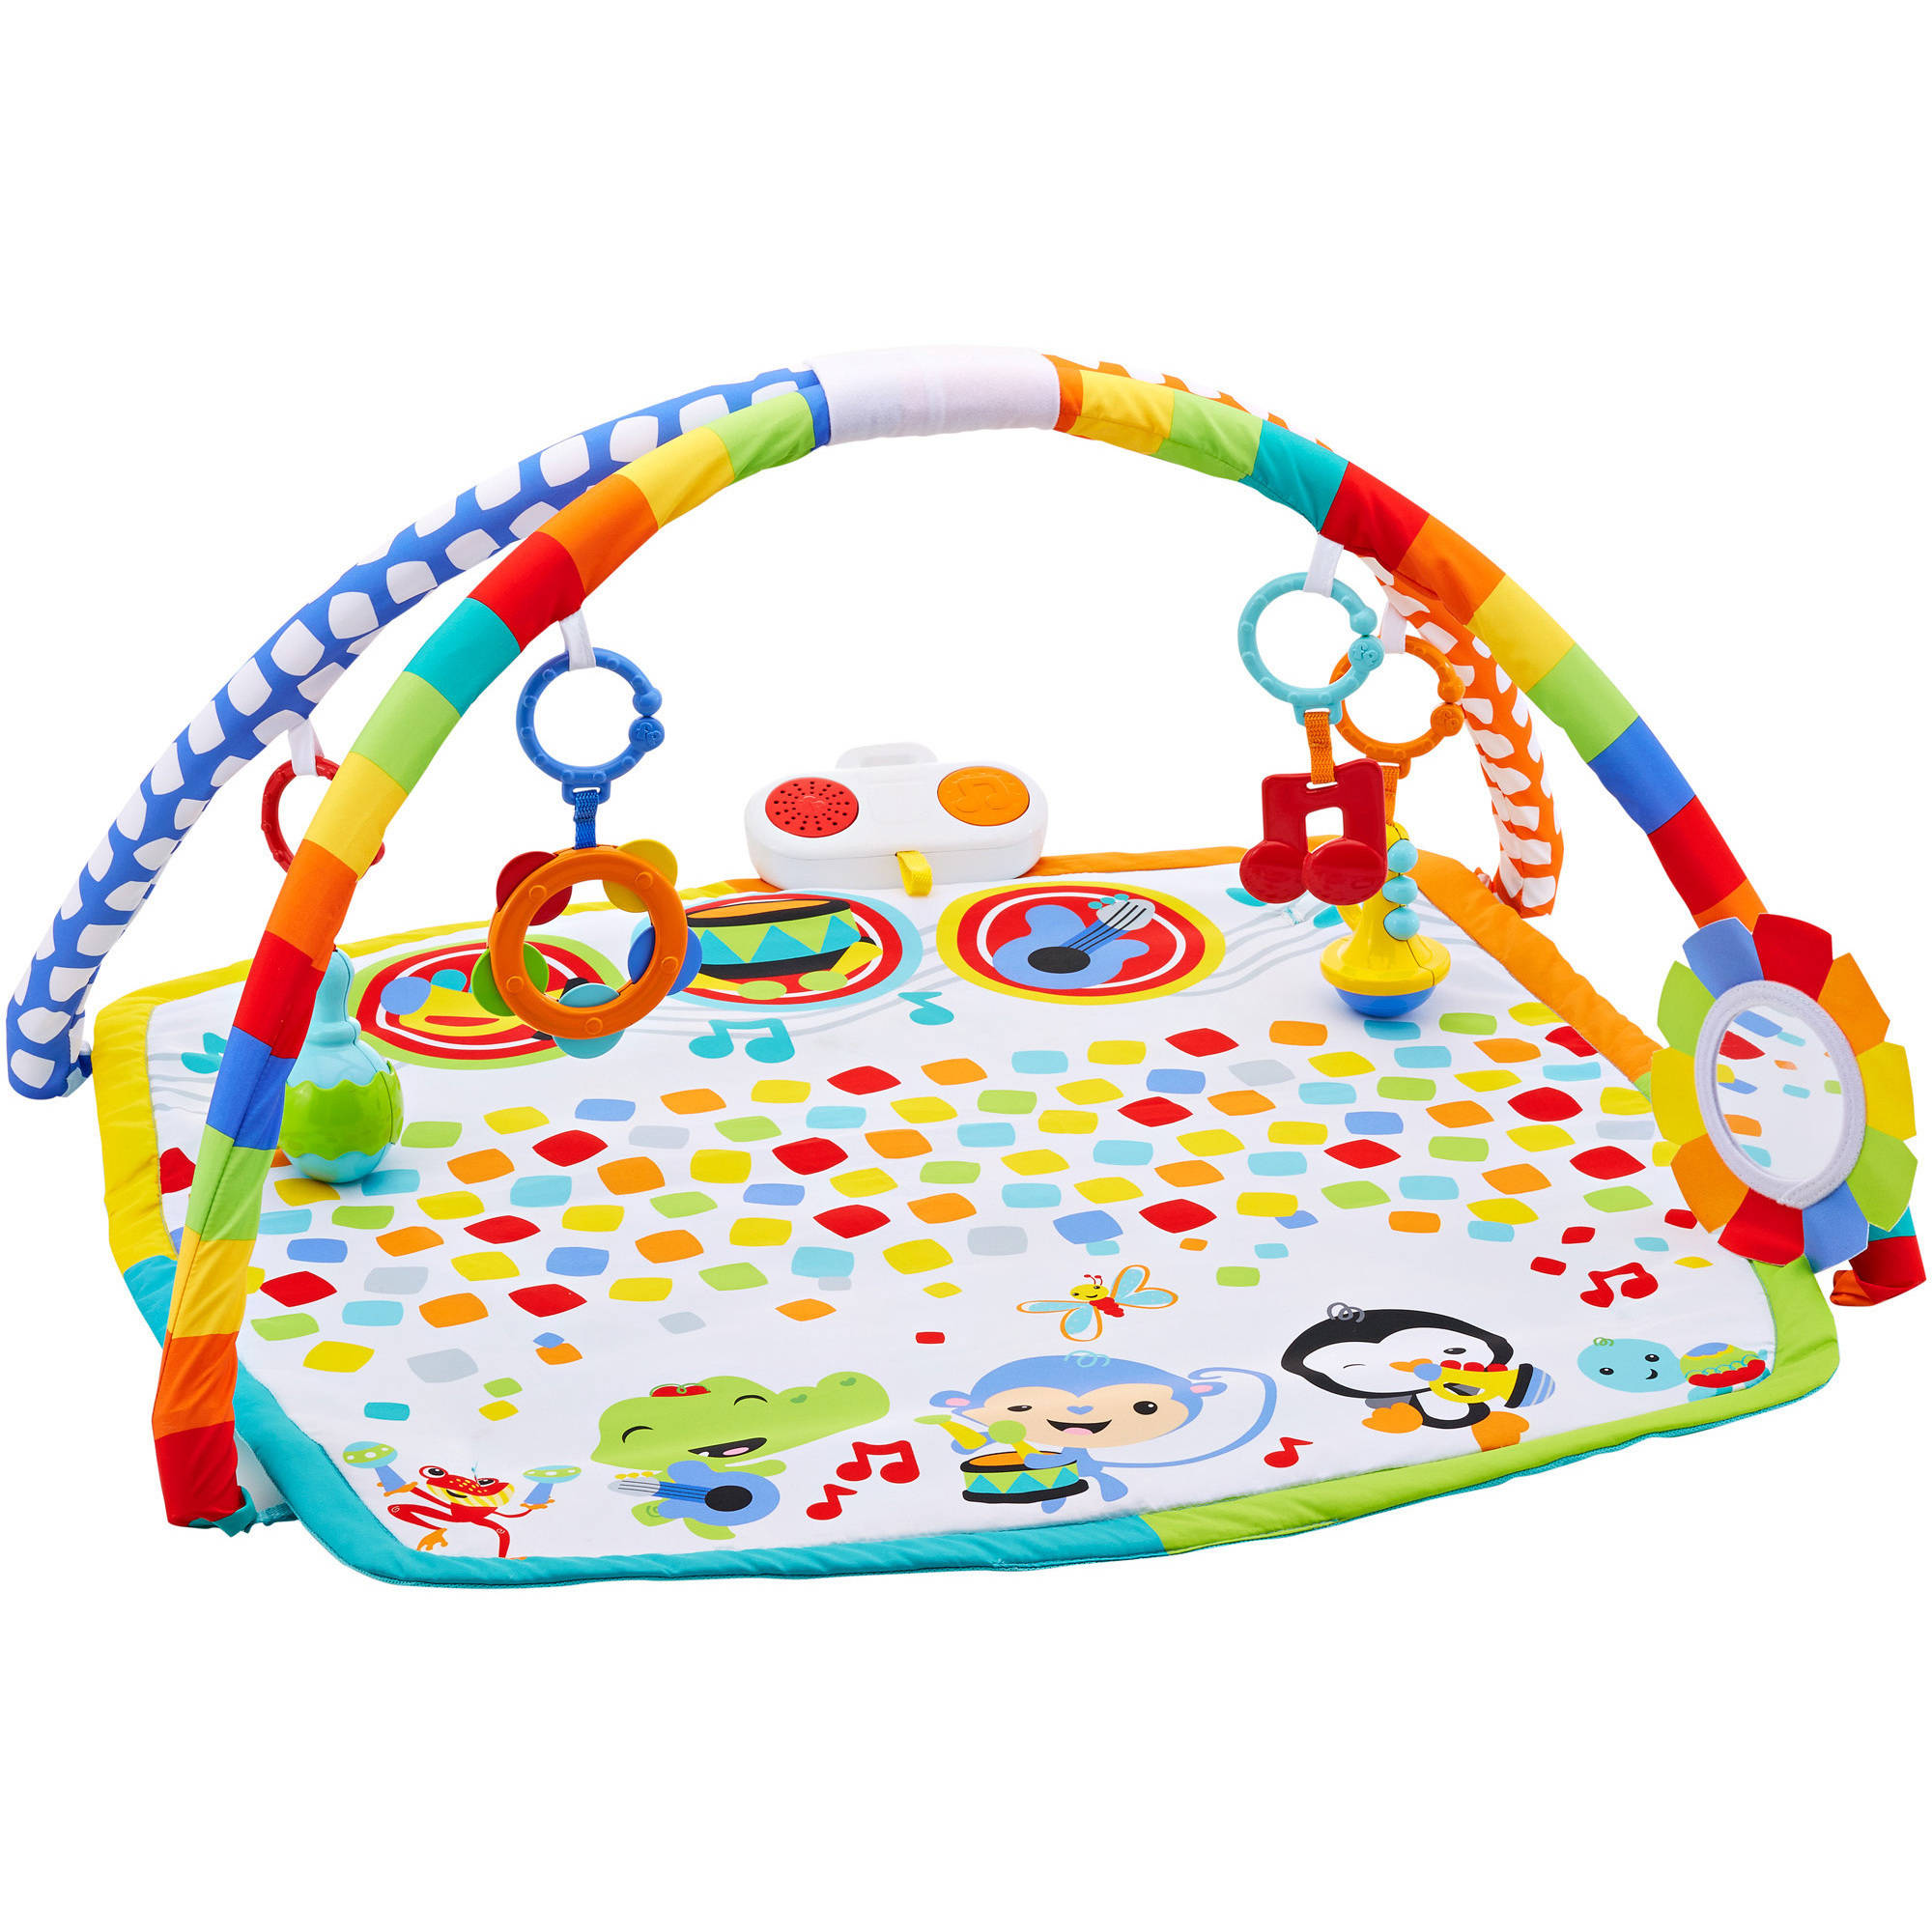 Fisher Price Baby s Bandstand Play Gym Walmart